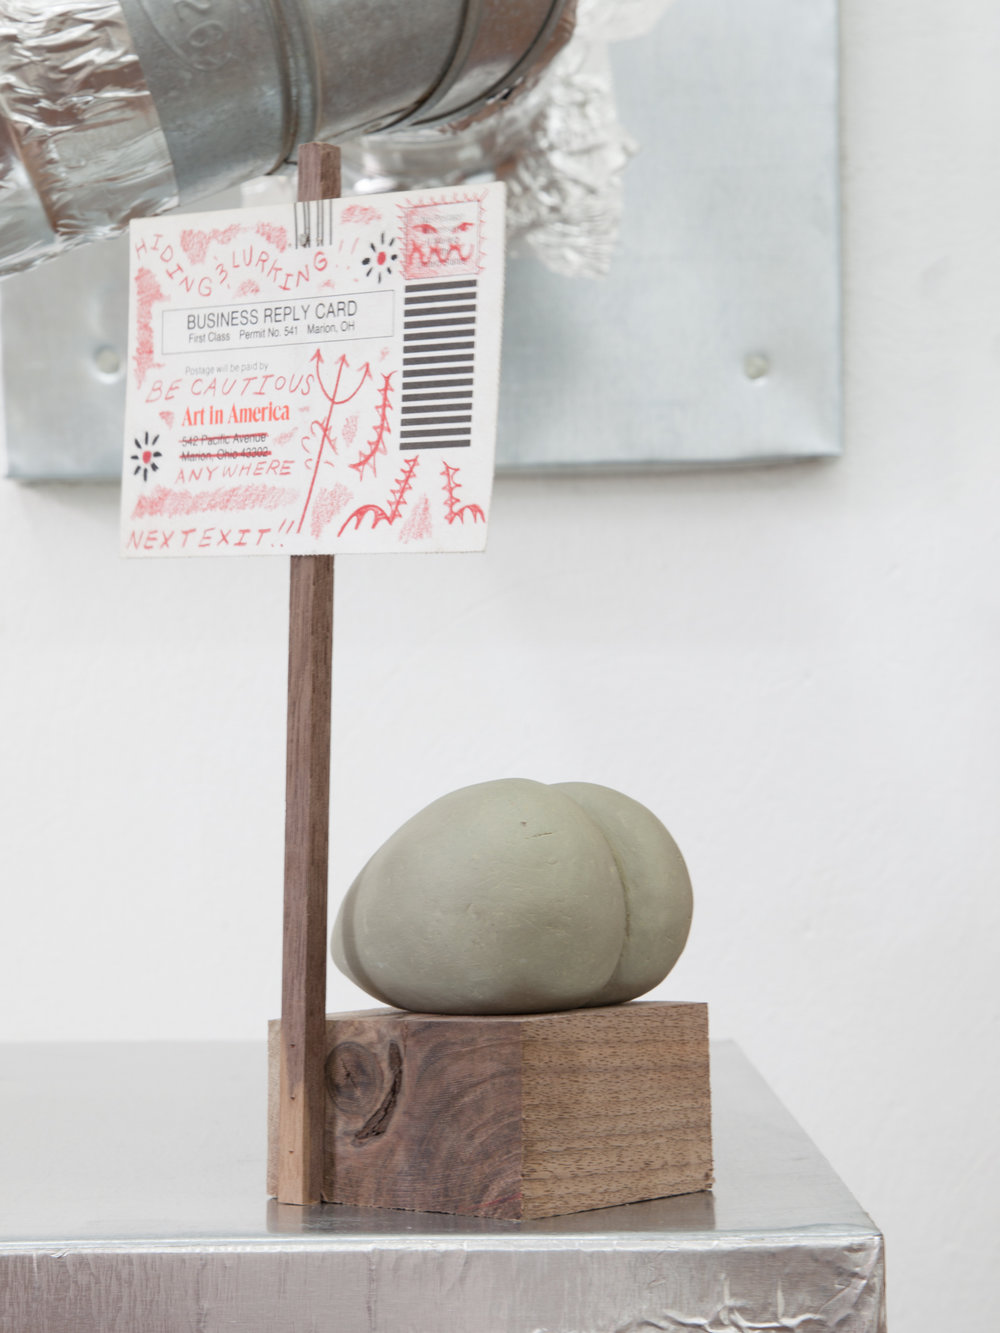 Harry Gould Harvey IV,  Art in America, IS EVERYWHERE! , 2018, Foraged Walnut from Aquidneck island, Foraged Clay from Swans Island, Art in America Mailer, & A Single Stainless Steel Nail. 9.5 x 5.5 x 3.5 inches